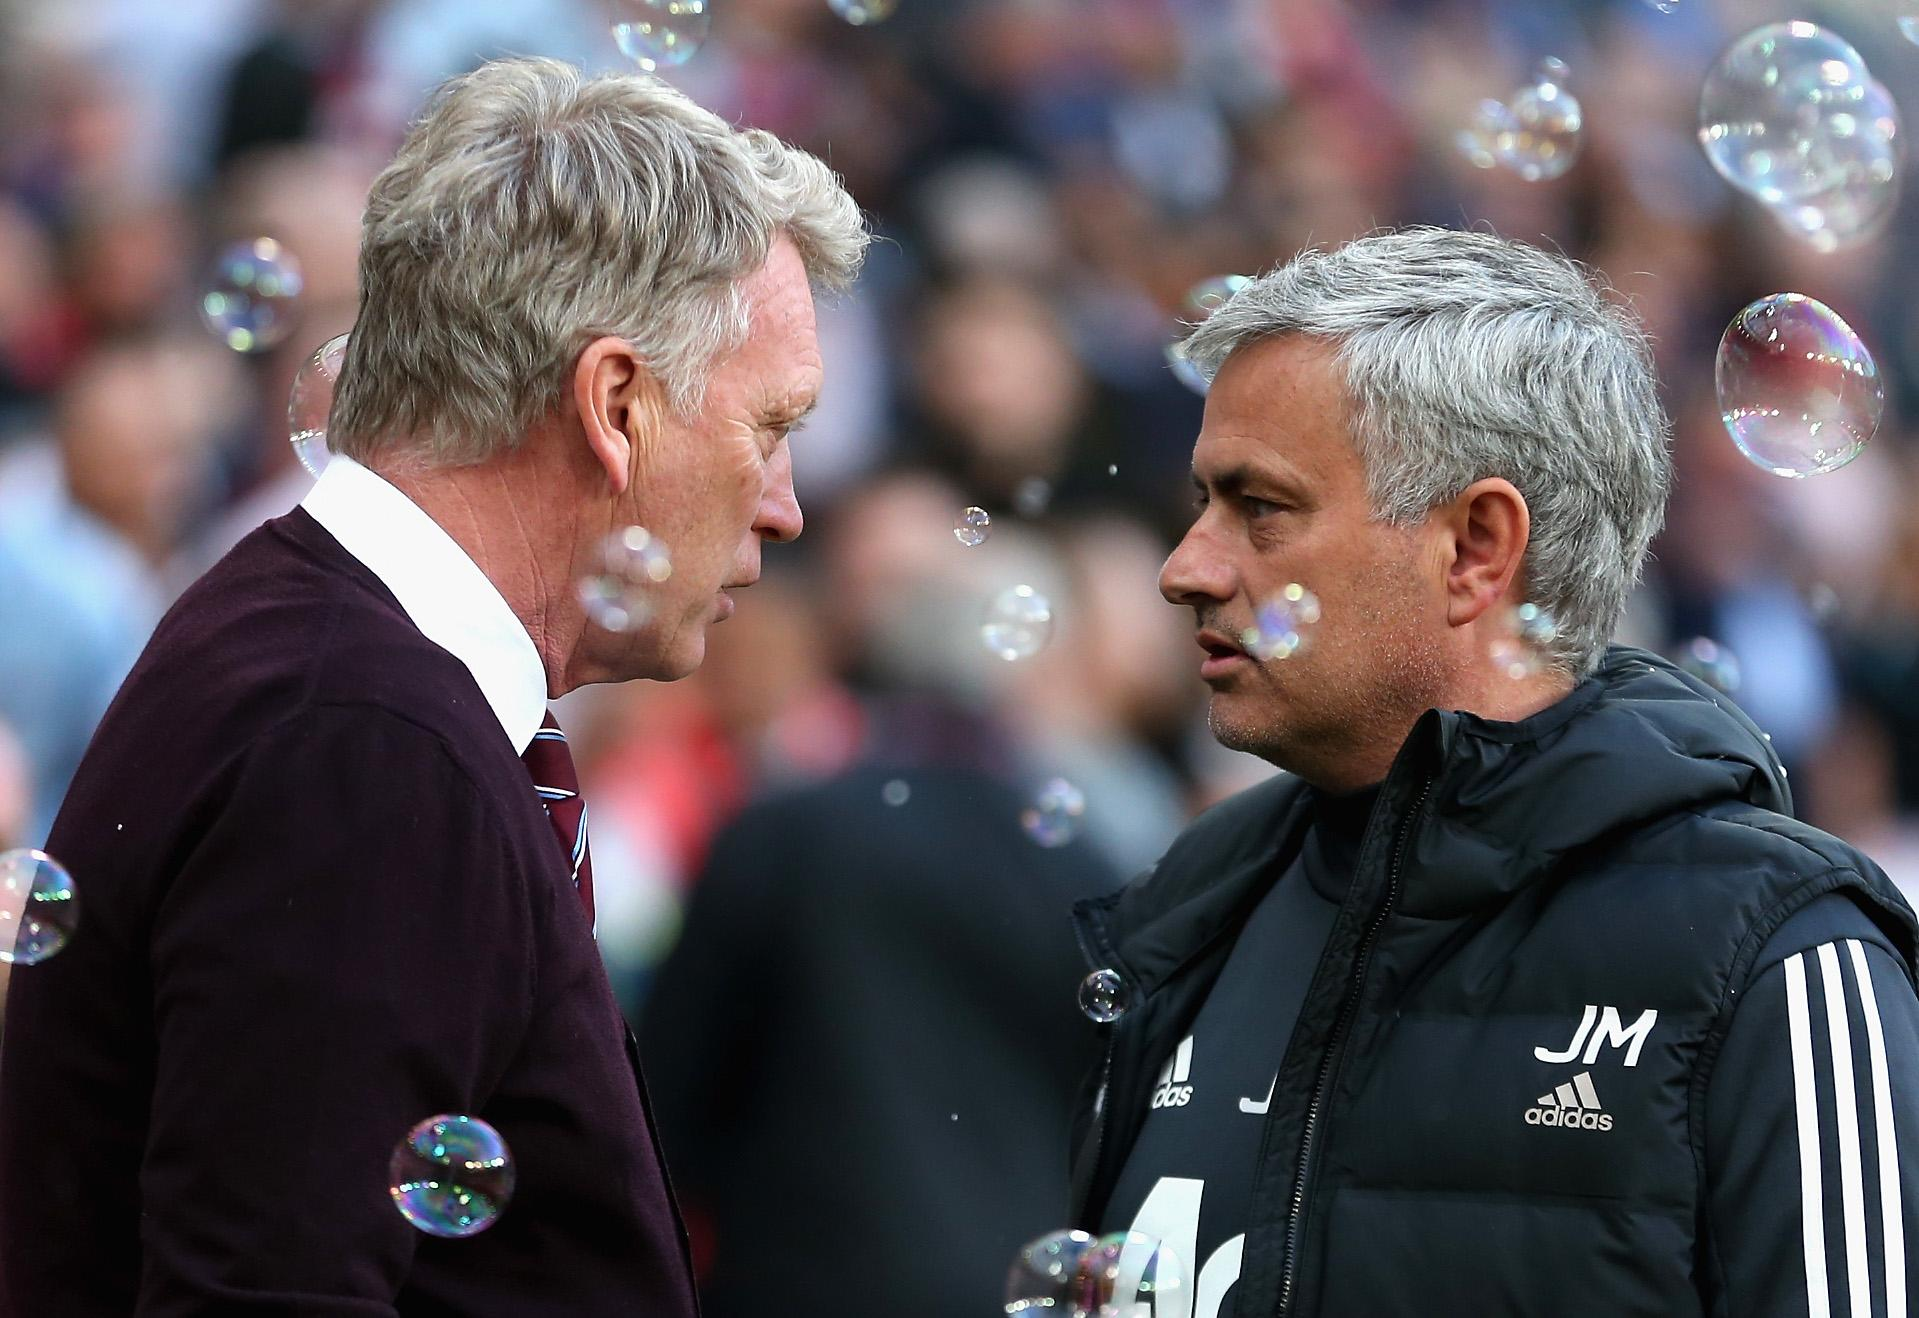 Man United settle for a boring draw seal a second-place finish in the Premier League